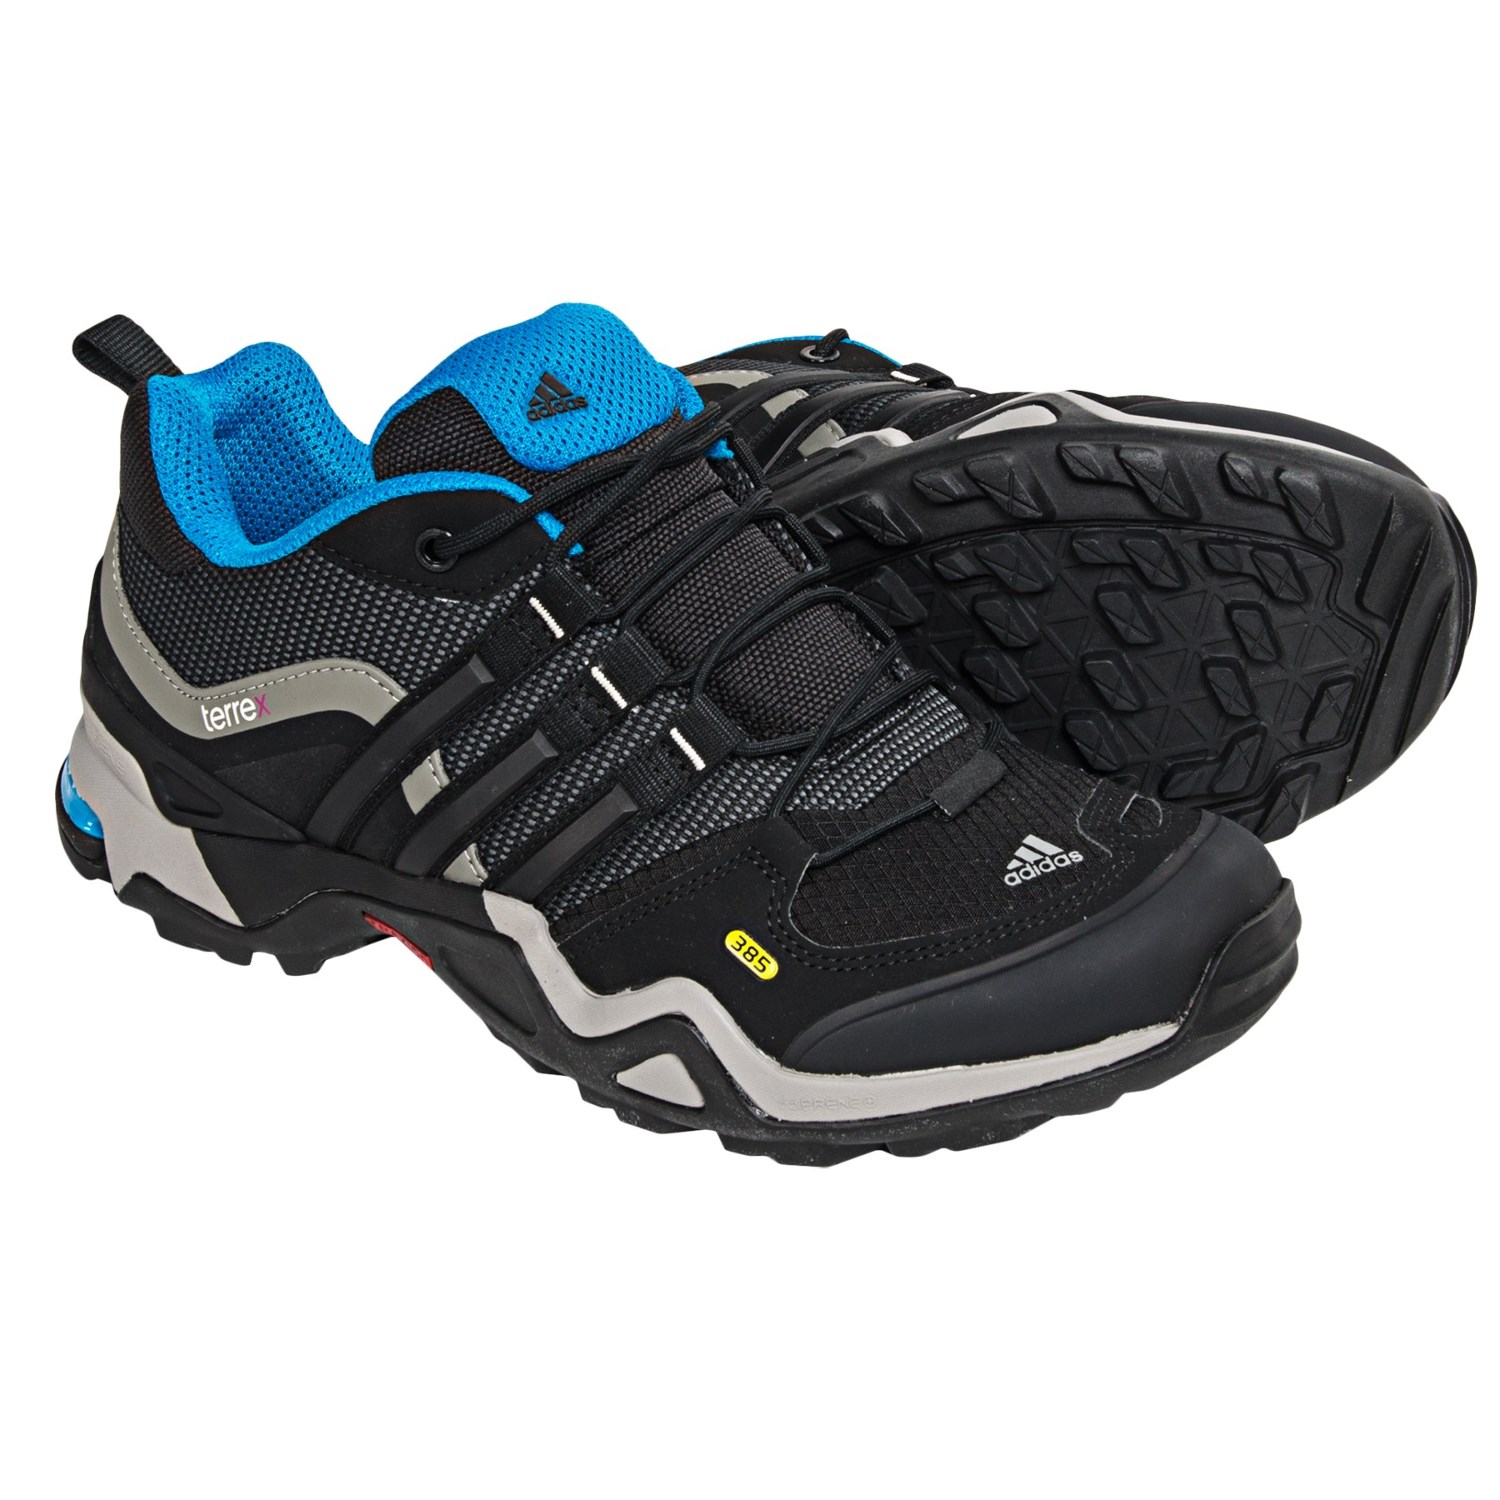 reputable site 83a22 421e6 adidas outdoor Terrex Fast X Hiking Shoes (For Women) - Save 40%